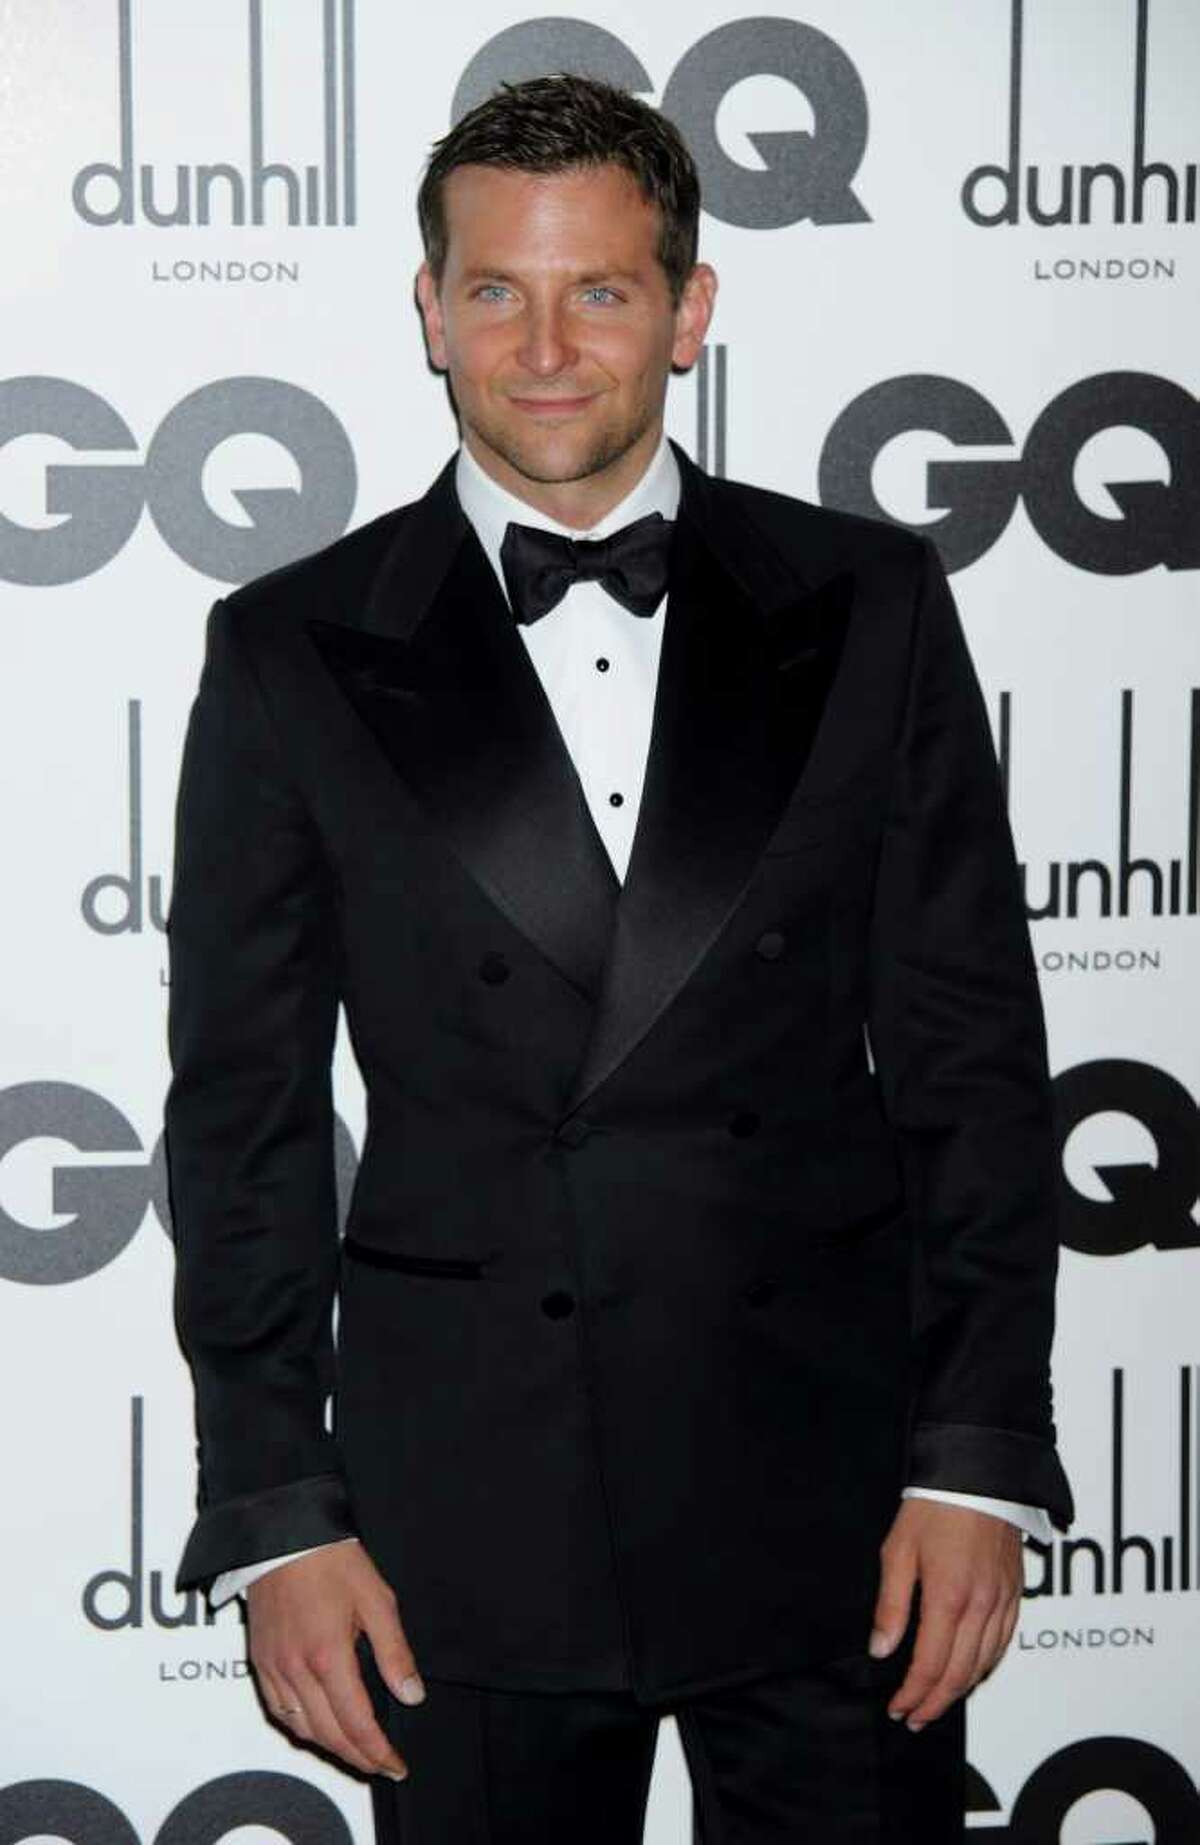 """FILE - In this Sept. 6, 2011 file photo, actor Bradley Cooper arrives for the GQ Men of the Year Awards in London. Cooper was named """"People"""" magazine's sexiest man alive. (AP Photo/Jonathan Short, file)"""